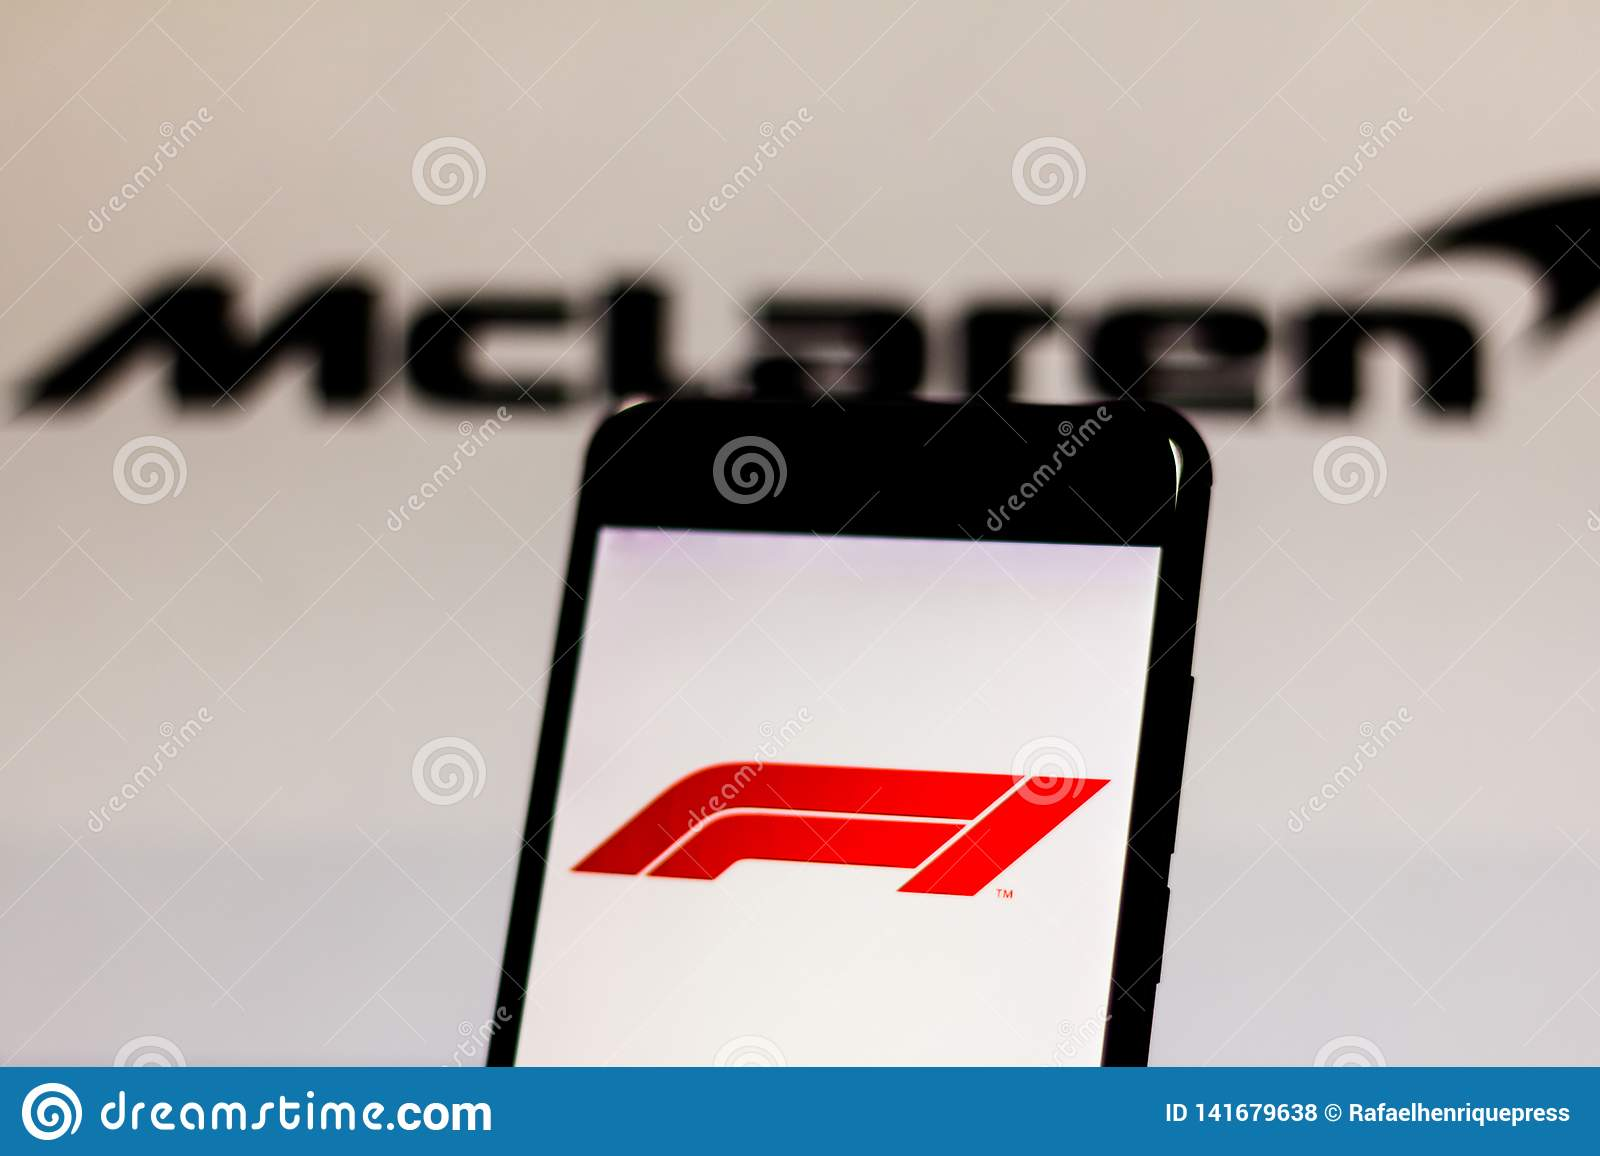 Official F1 FIA Formula 1 Logo On The Mobile Device Screen  Team